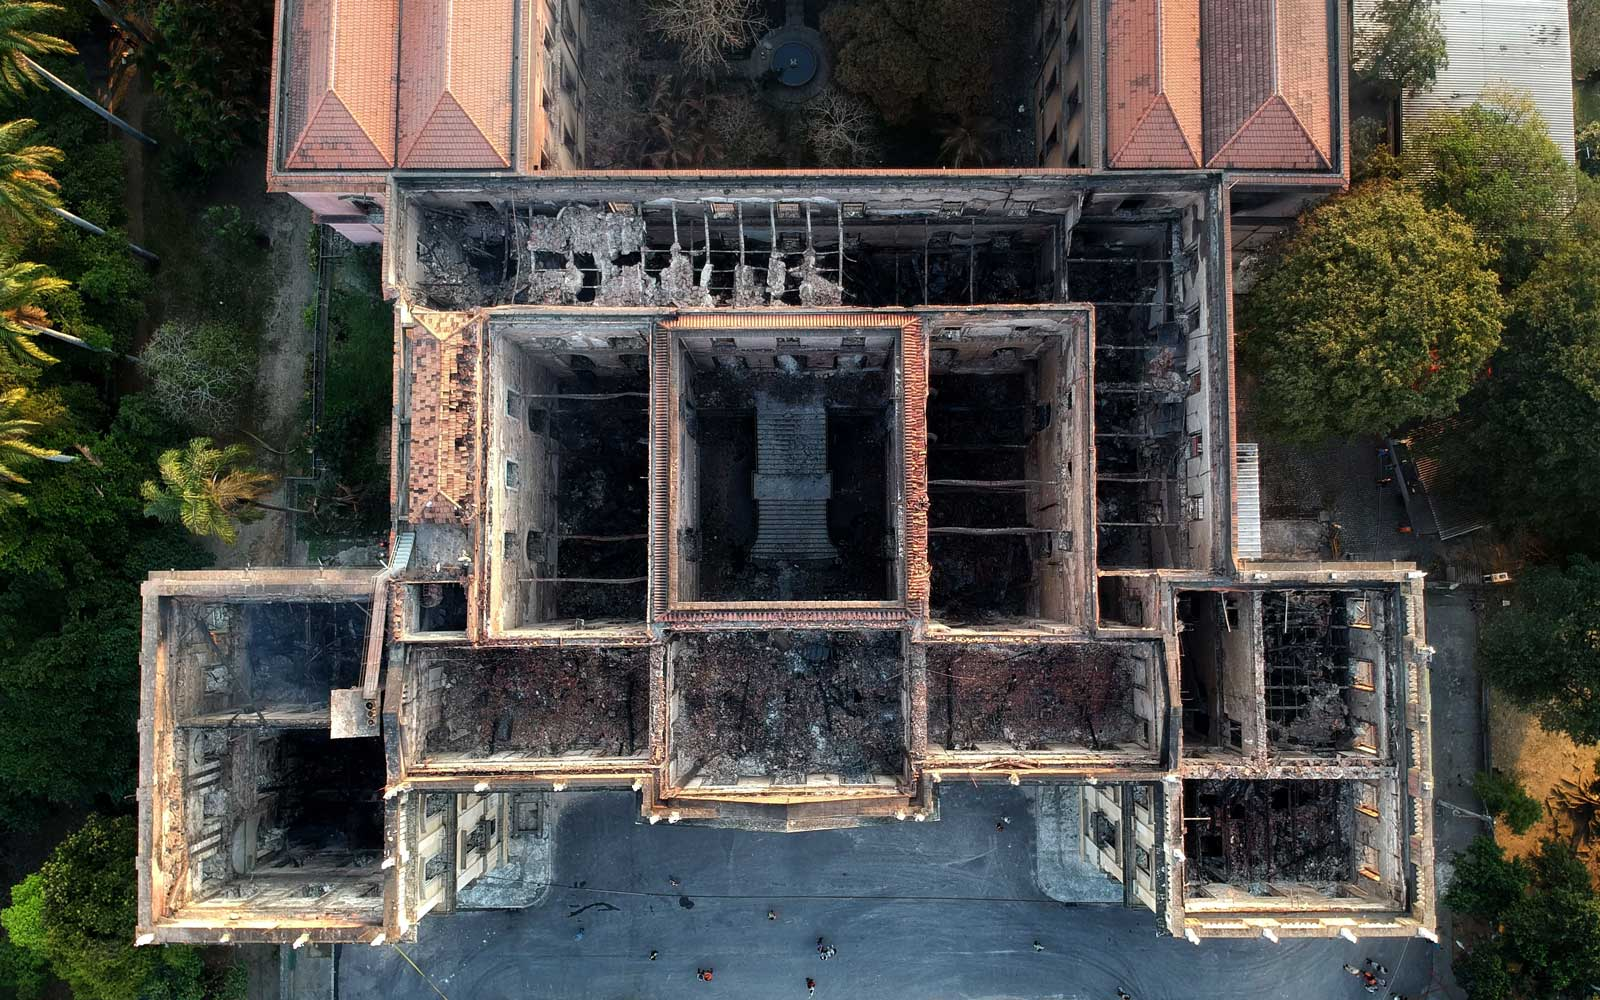 Drone view of Rio de Janeiro's treasured National Museum, one of Brazil's oldest, on September 3, 2018, a day after a massive fire ripped through the building.